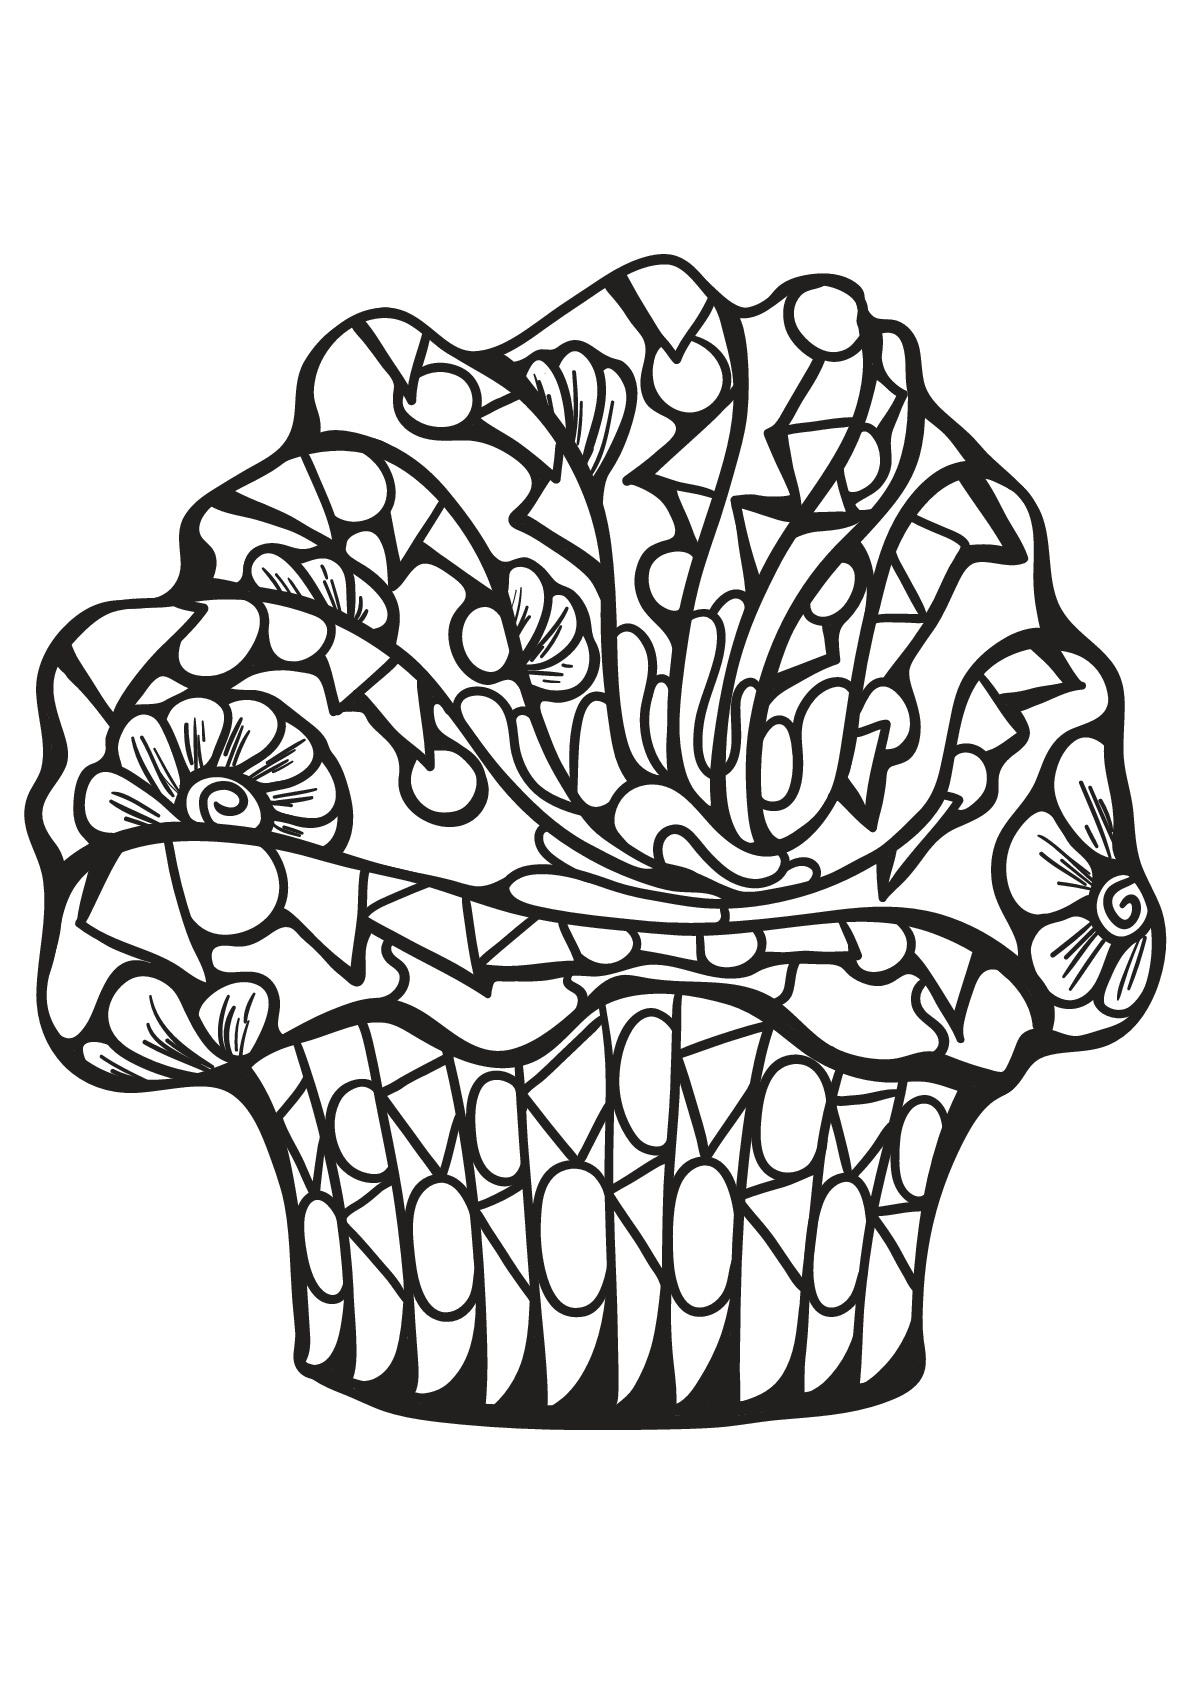 Free book cupcake 7 - Cupcakes Adult Coloring Pages